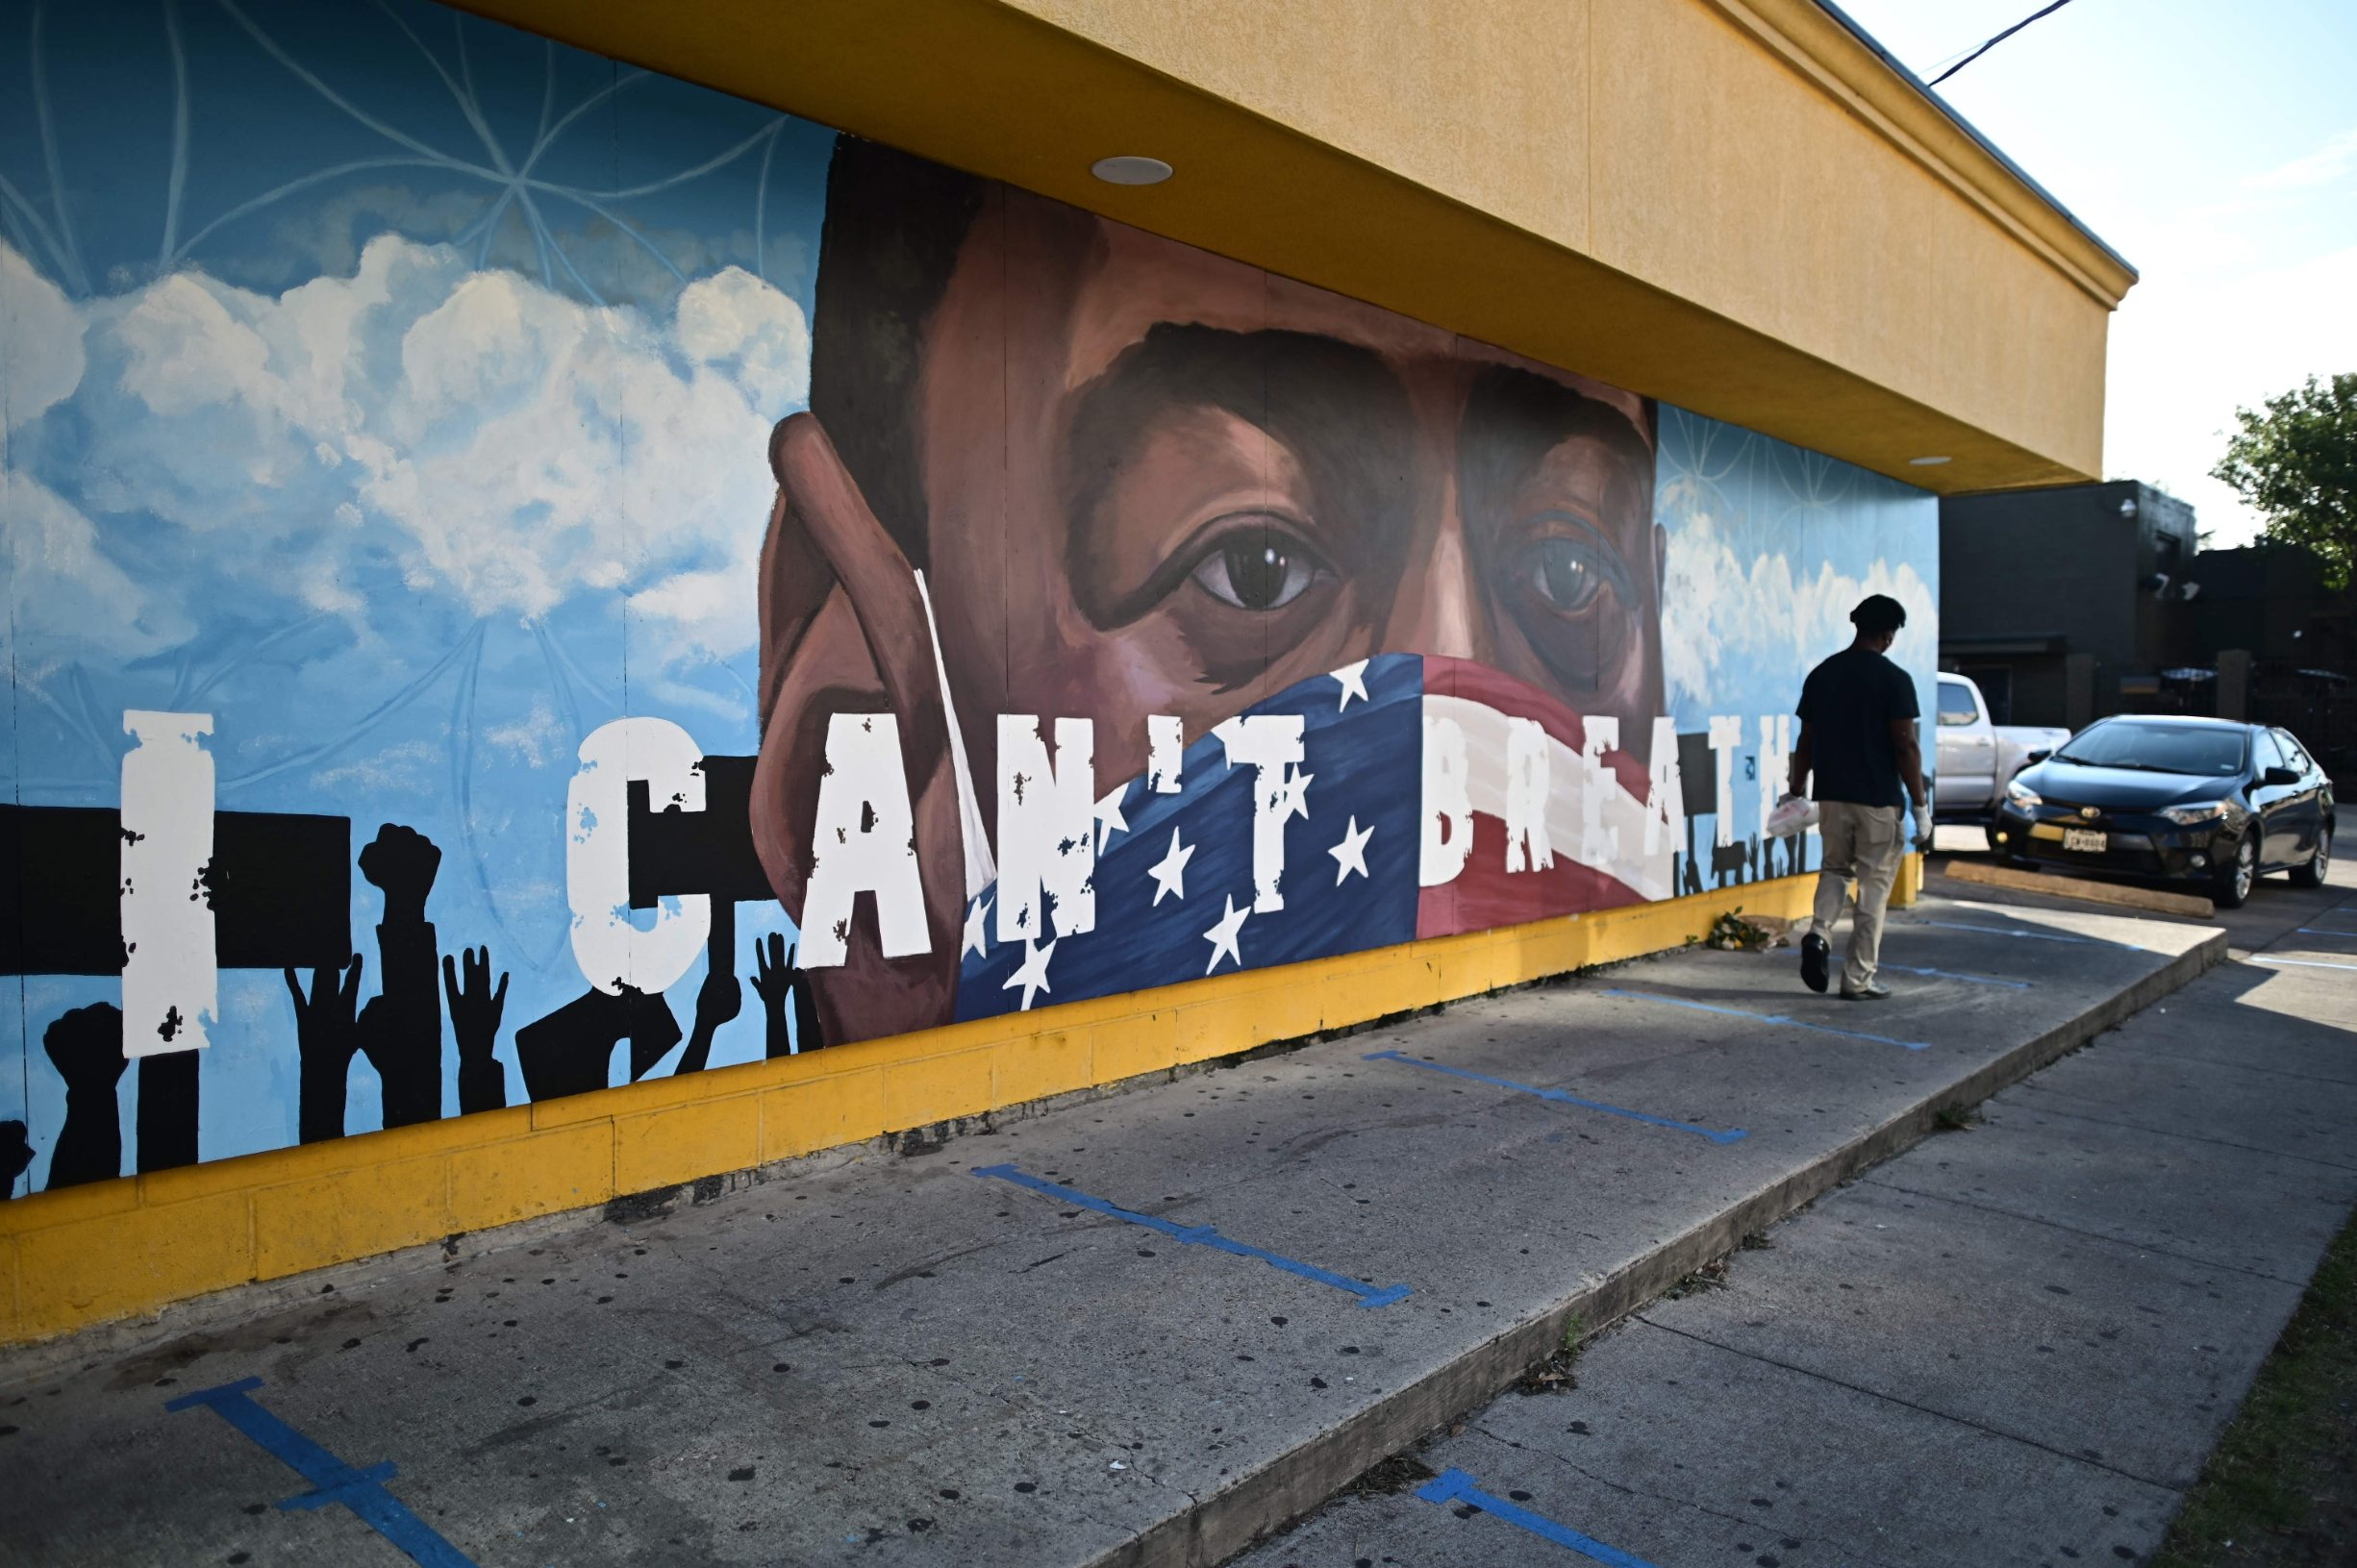 A person walks by a mural for George Floyd in Houston, Texas on June 8,2020. - Democrats vowed June 7, 2020 to press legislation to fight systemic racism in US law enforcement as the battle for change triggered by the police killing of George Floyd began shifting from the streets to the political sphere.Demonstrations continued across the nation Sunday -- including in Washington, New York and Winter Park, Florida -- as protesters began focusing their initial outrage over the death of the unarmed Floyd into demands for police reform and social justice. (Photo by Johannes EISELE / AFP)